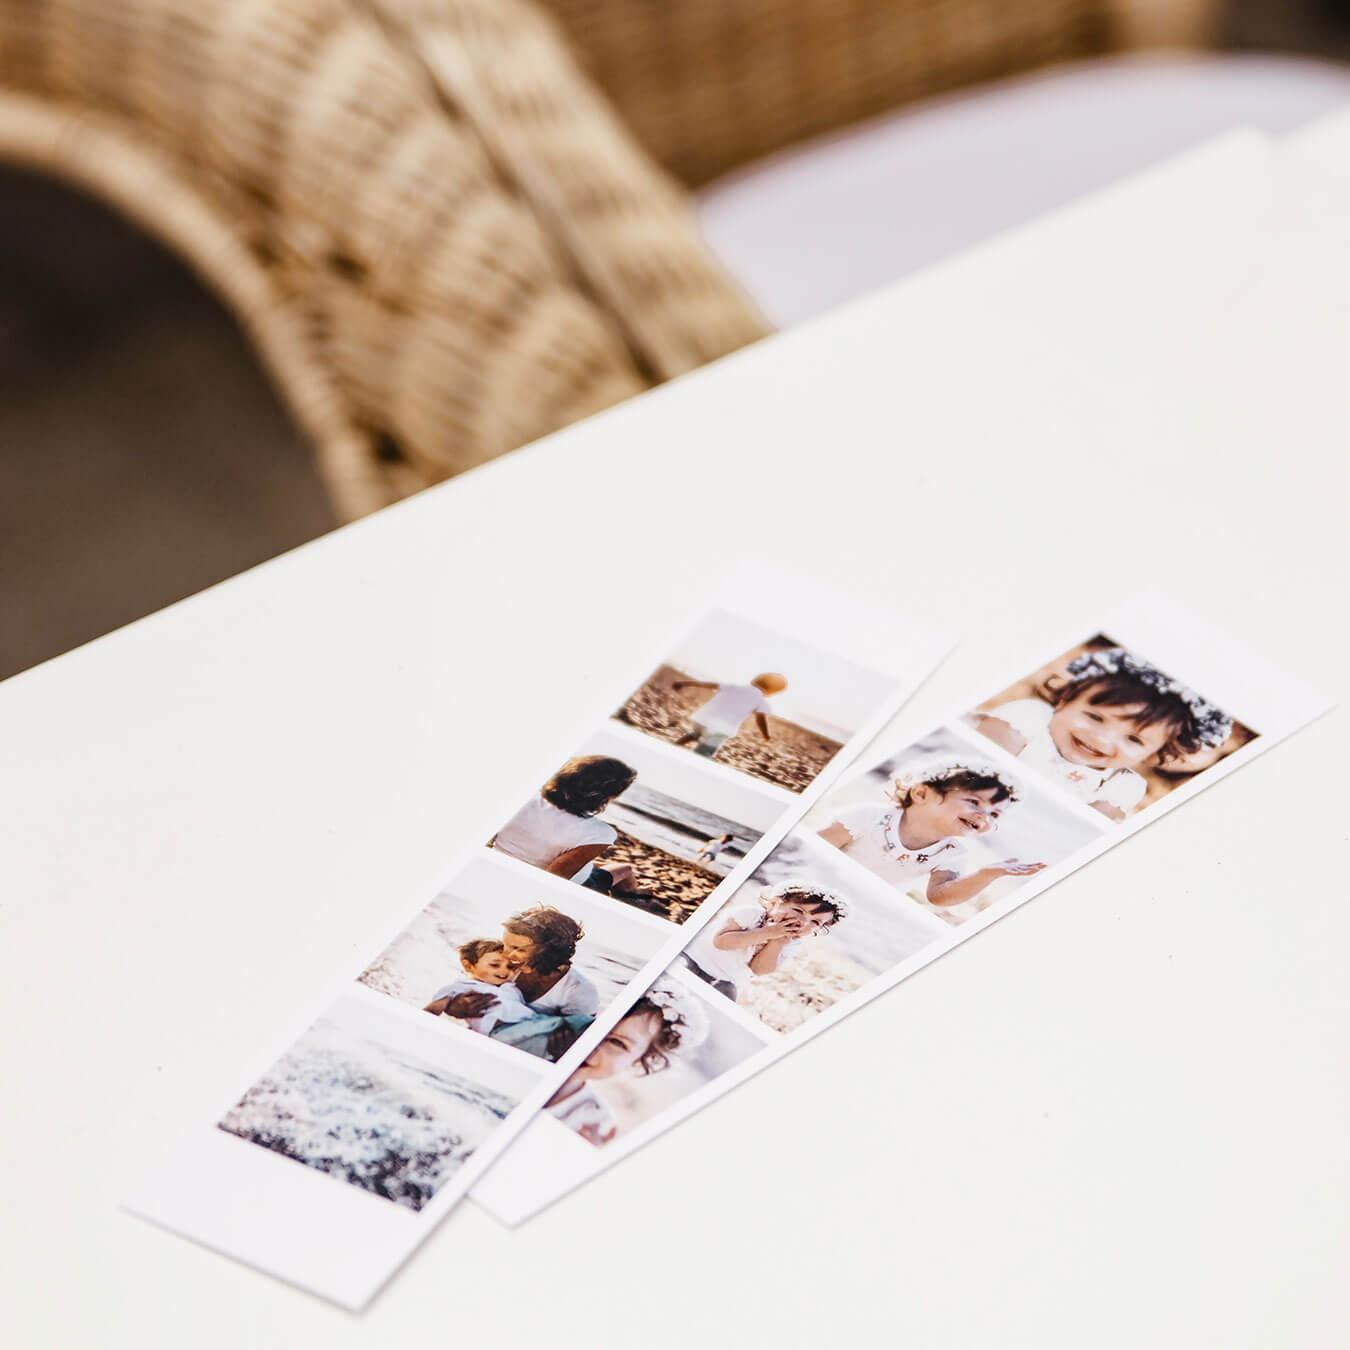 Innocence - Photo booth prints - Photo prints - Small format